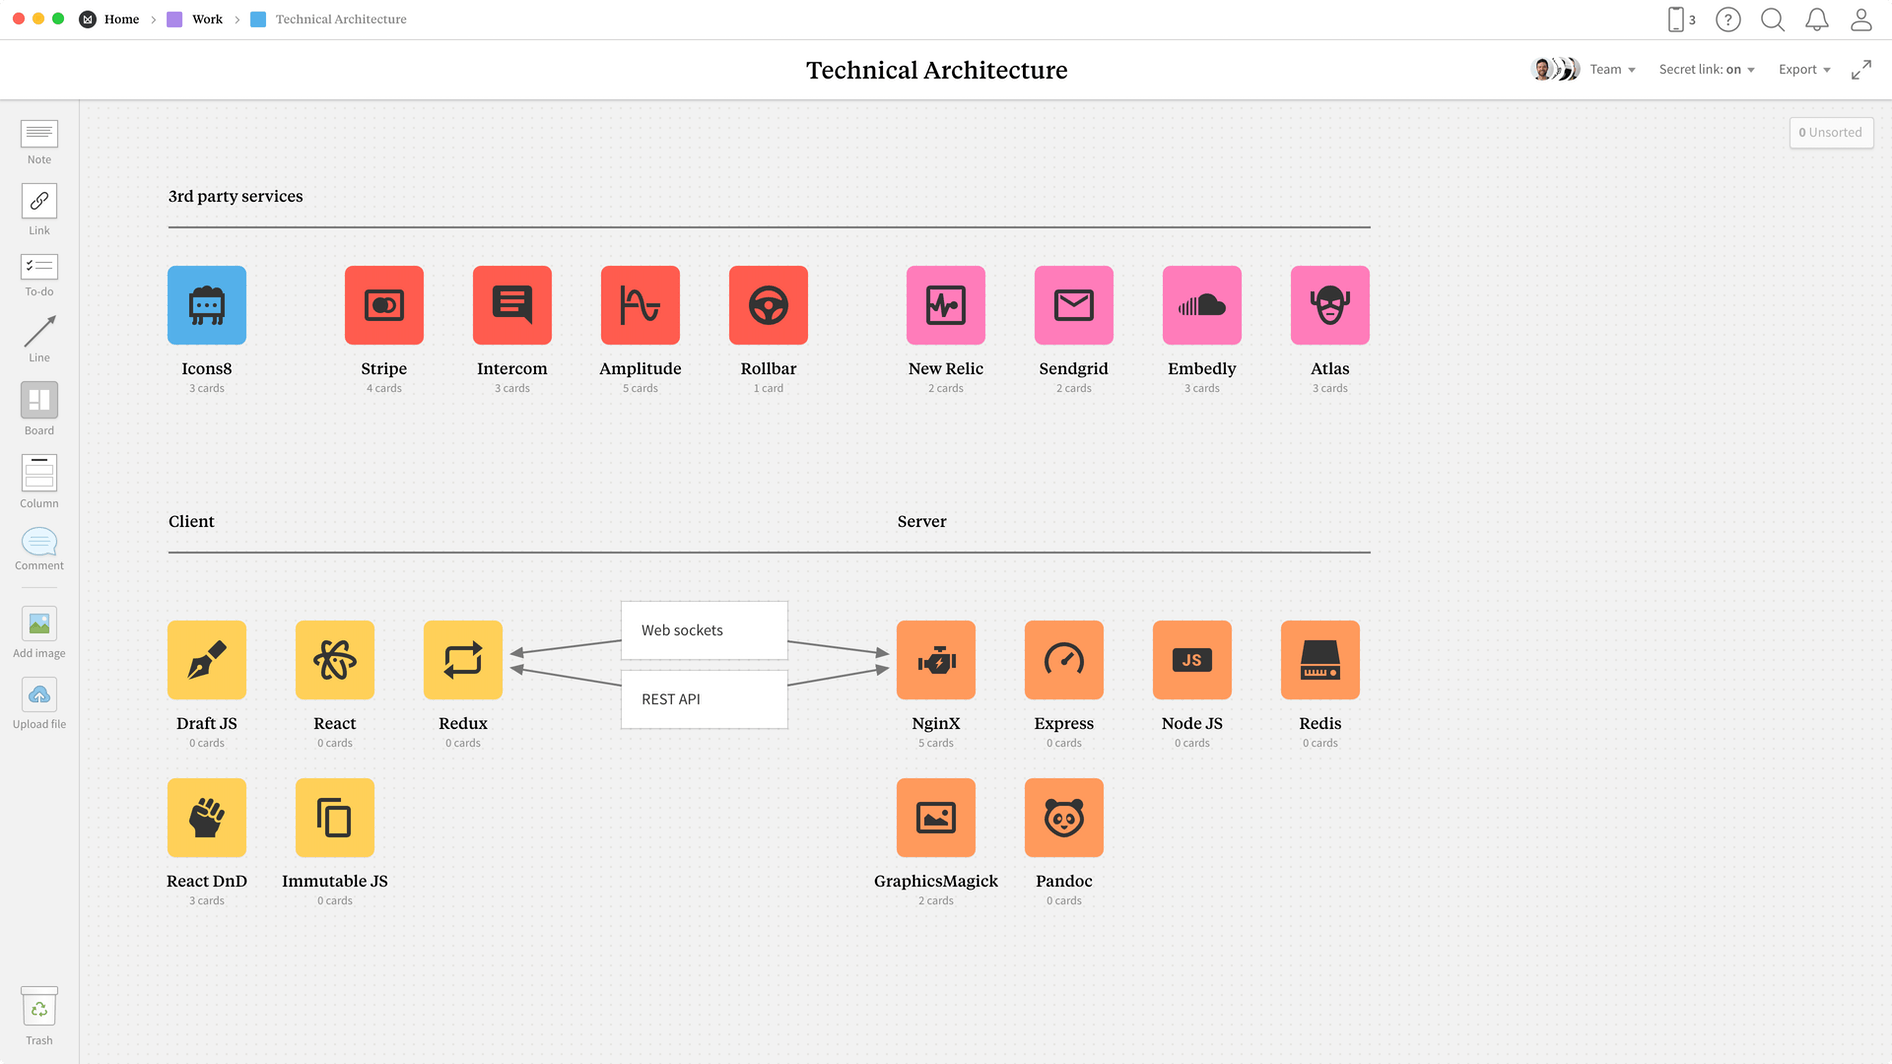 Technical Architecture Template, within the Milanote app